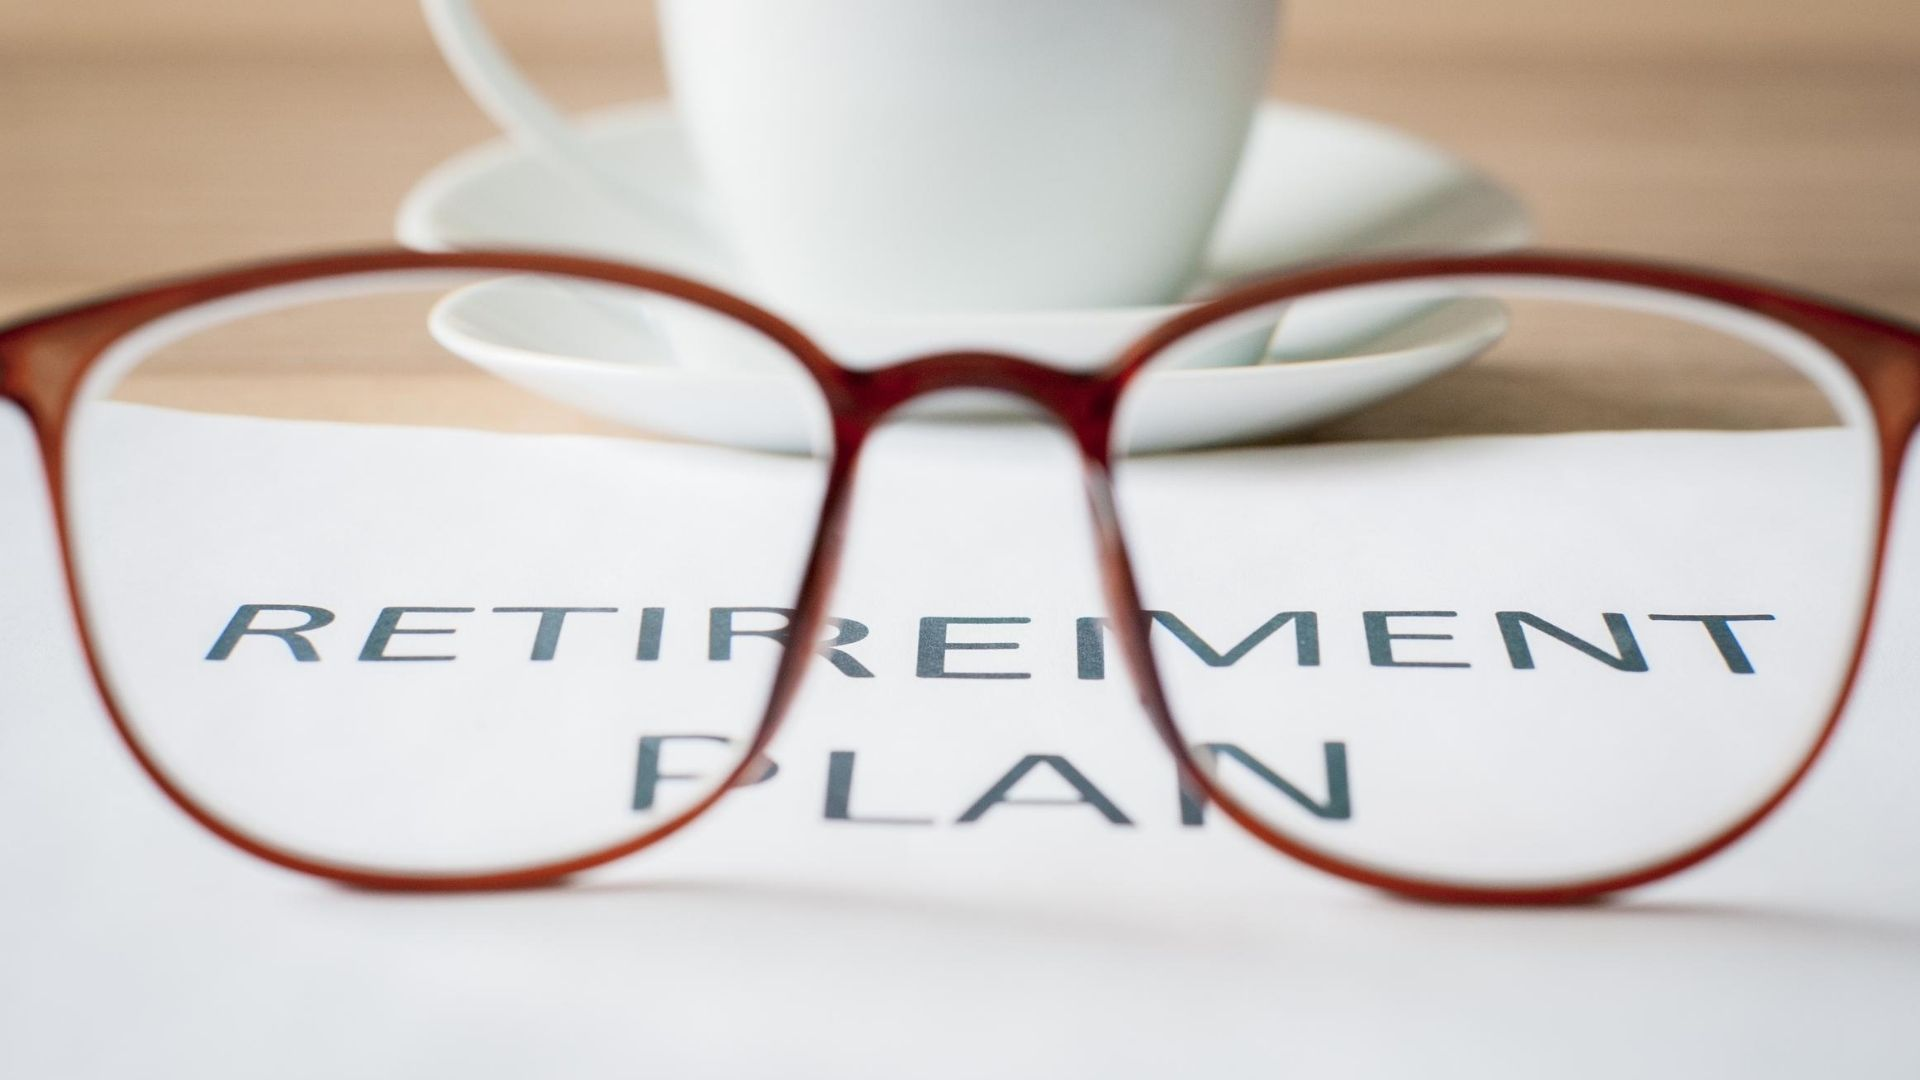 5 Retirement planning mistakes to avoid 35